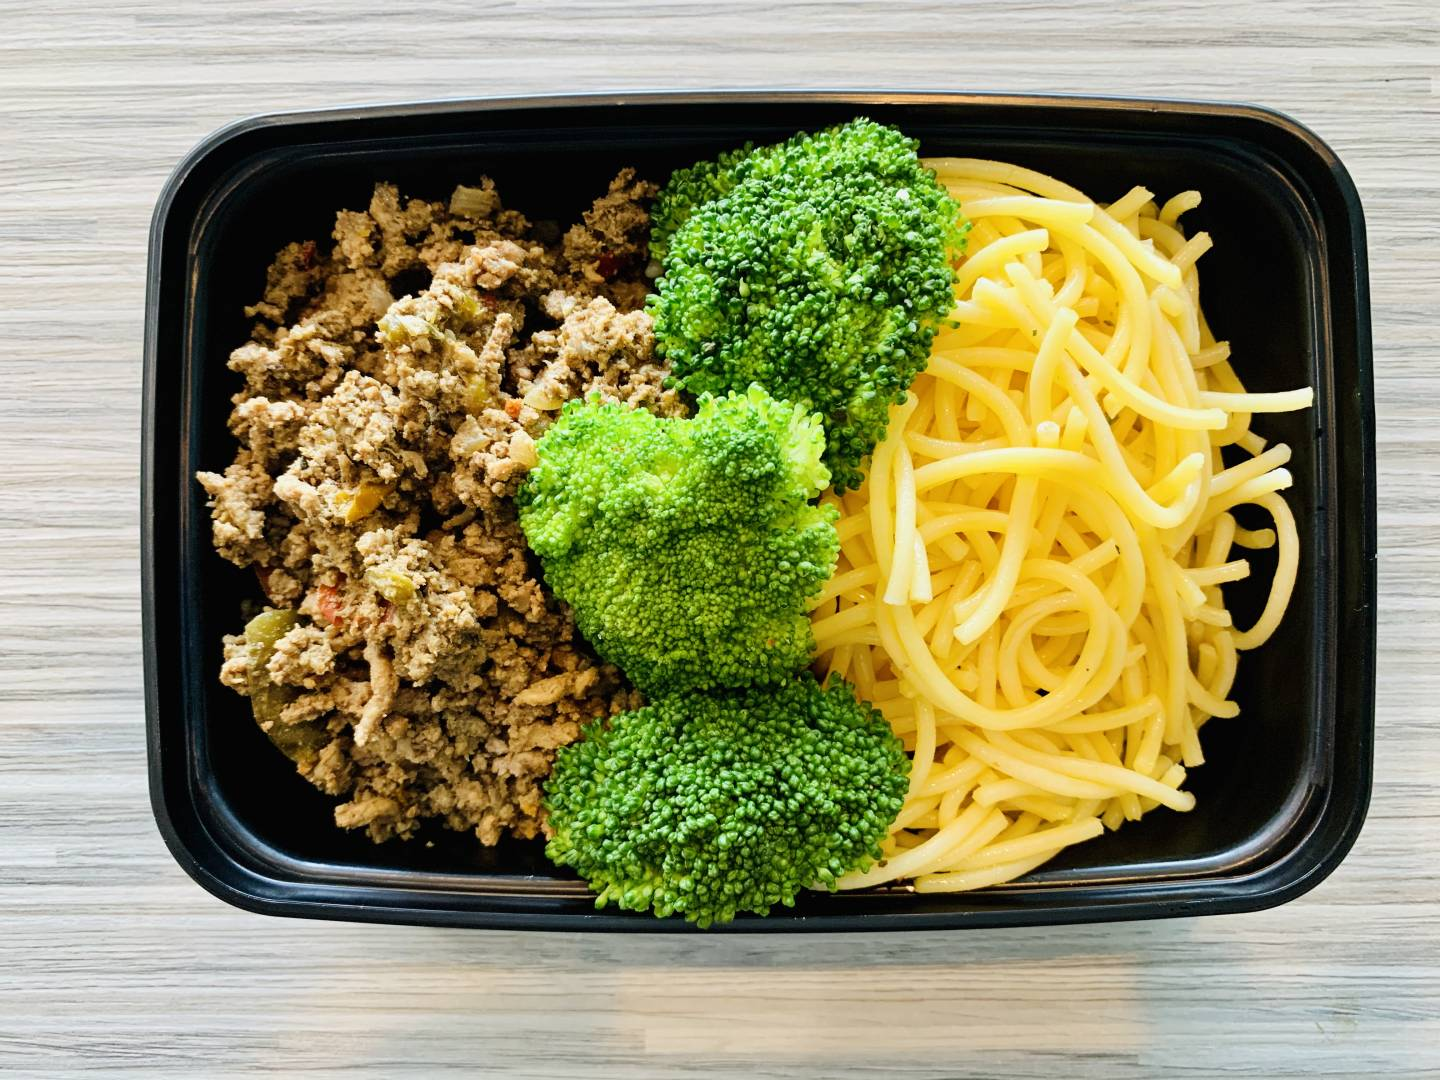 Ground Beef, Pasta and Broccoli